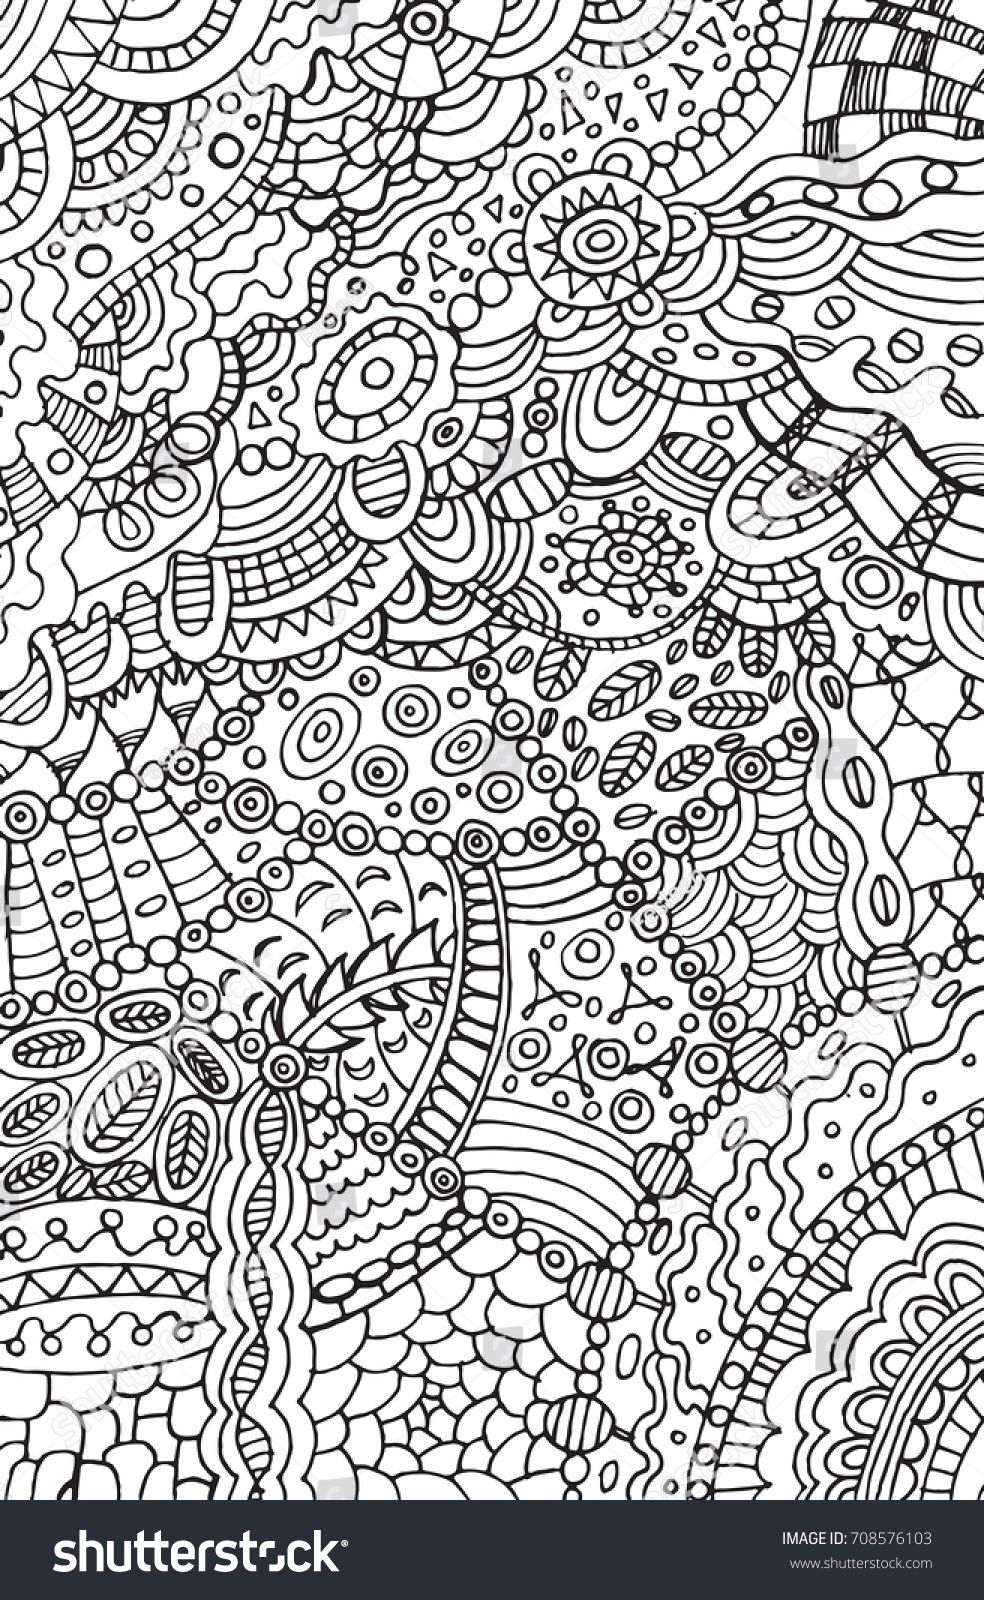 Doodle Coloring Page For Adults Background Illustration For